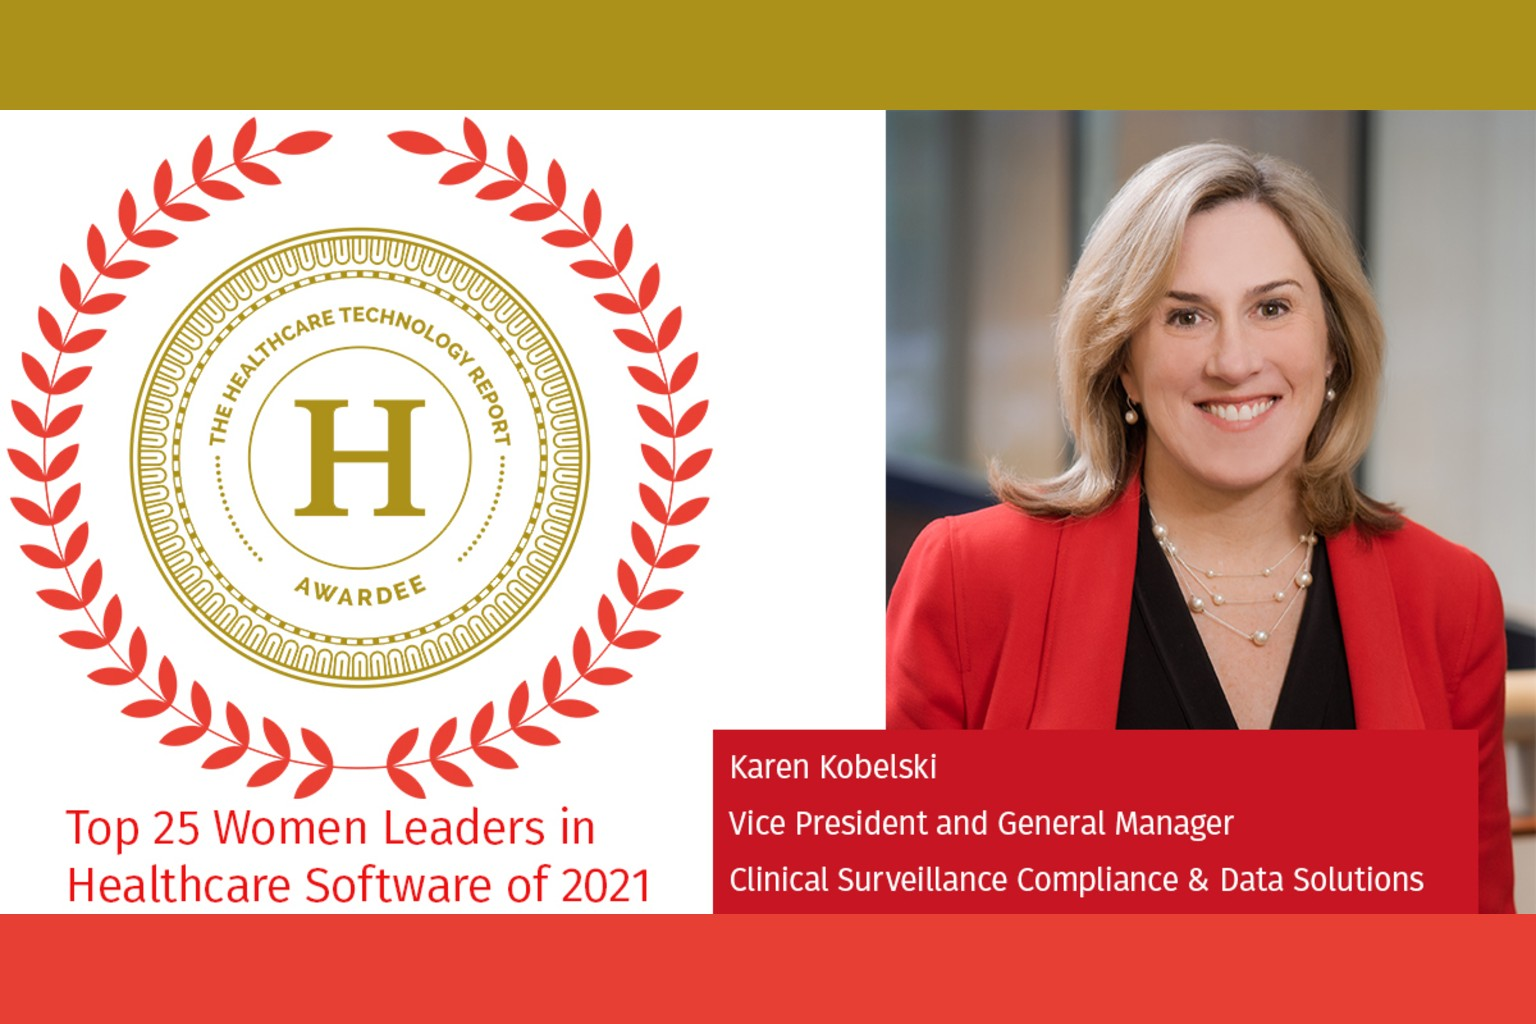 Healthcare Technology Report names Wolters Kluwer's Karen Kobelski  to Top 25 Women Leaders in Healthcare Software